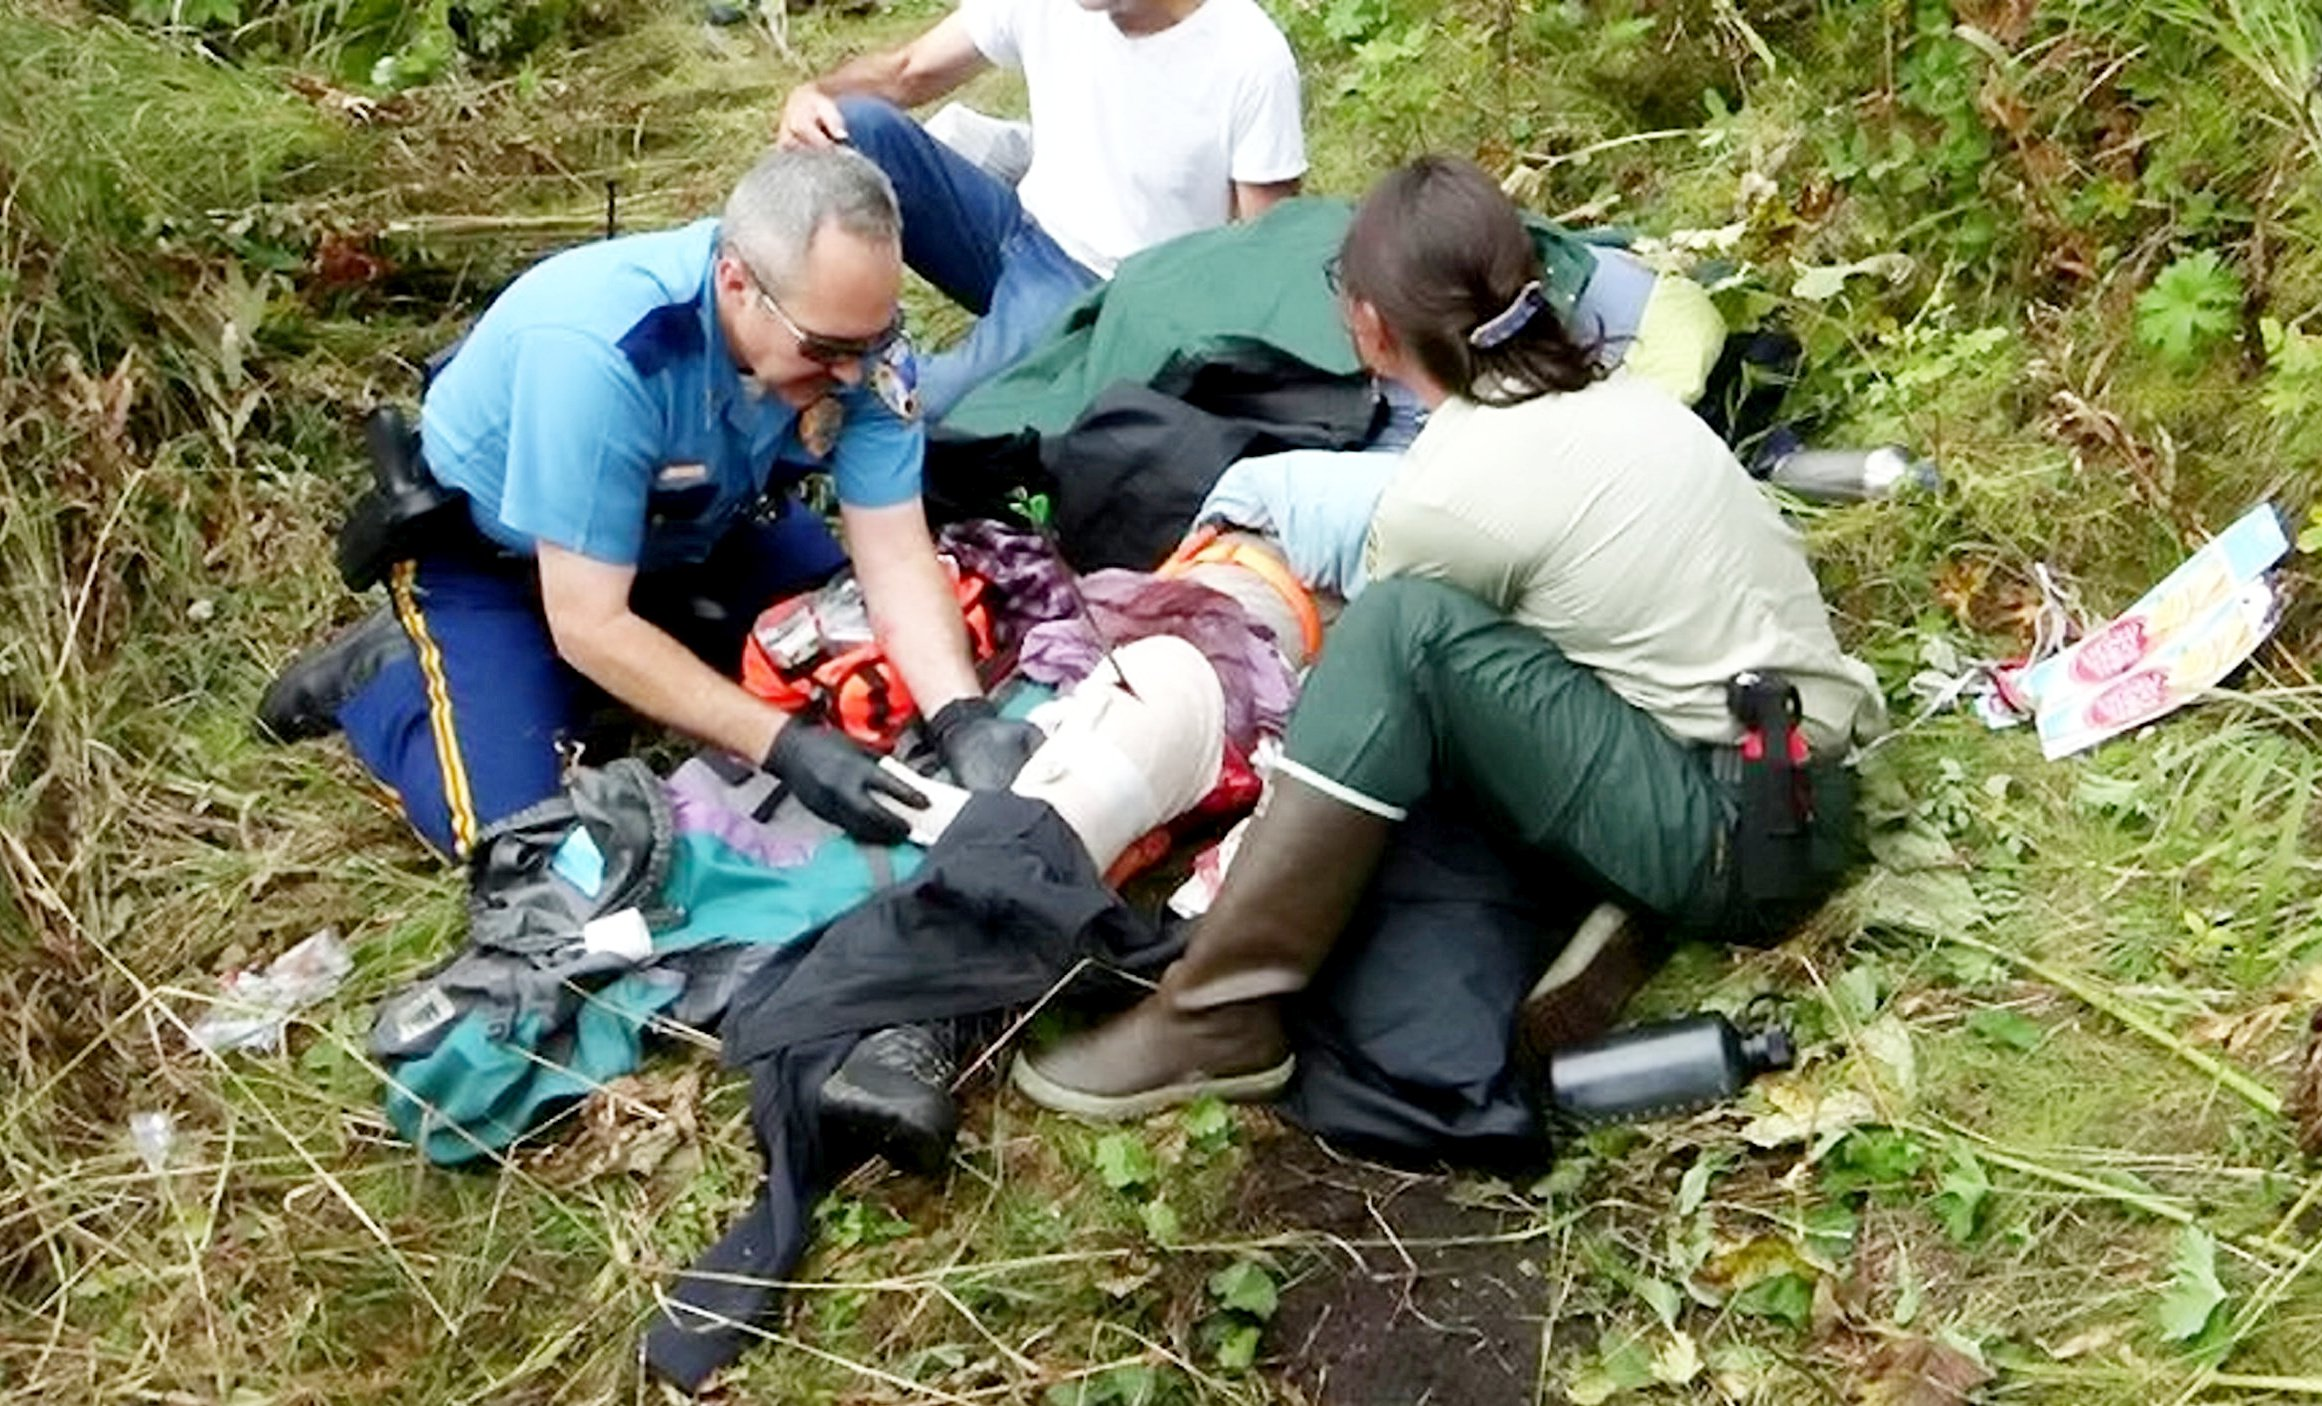 A hiker?s outing turned into a nightmare when was airlifted to hospital after becoming IMPALED on a broadhead arrow lurking in the grass. See SWNS story NYARROW. Janis Bronson, 59, was five miles into a hike on the Lower Russian Mountain trail in Cooper Landing, Alaska, when a sharp arrow was driven straight through her thigh on September 6. The arrow, used for hunting, was sitting tip up in the grass and was driven further into the teacher?s leg as she moved forward. The woman?s panicked husband Michael Bronson alerted Alaska State Troopers who hiked five miles to meet the couple at the trail?s convergence with the Upper Russian Mountain trail. Sergeant with the Alaska State Troopers Mike Zweifel stabilized the woman?s gruesome wound before emergency assistance from the Moose Pass Fire and Bear Creek Volunteer Fire Department hiked to meet them. Afraid of dislodging the arrow, first responders decided that Janis, of Anchorage, Alaska, should be airlifted by the National Guard to Providence Alaska Medical Center.